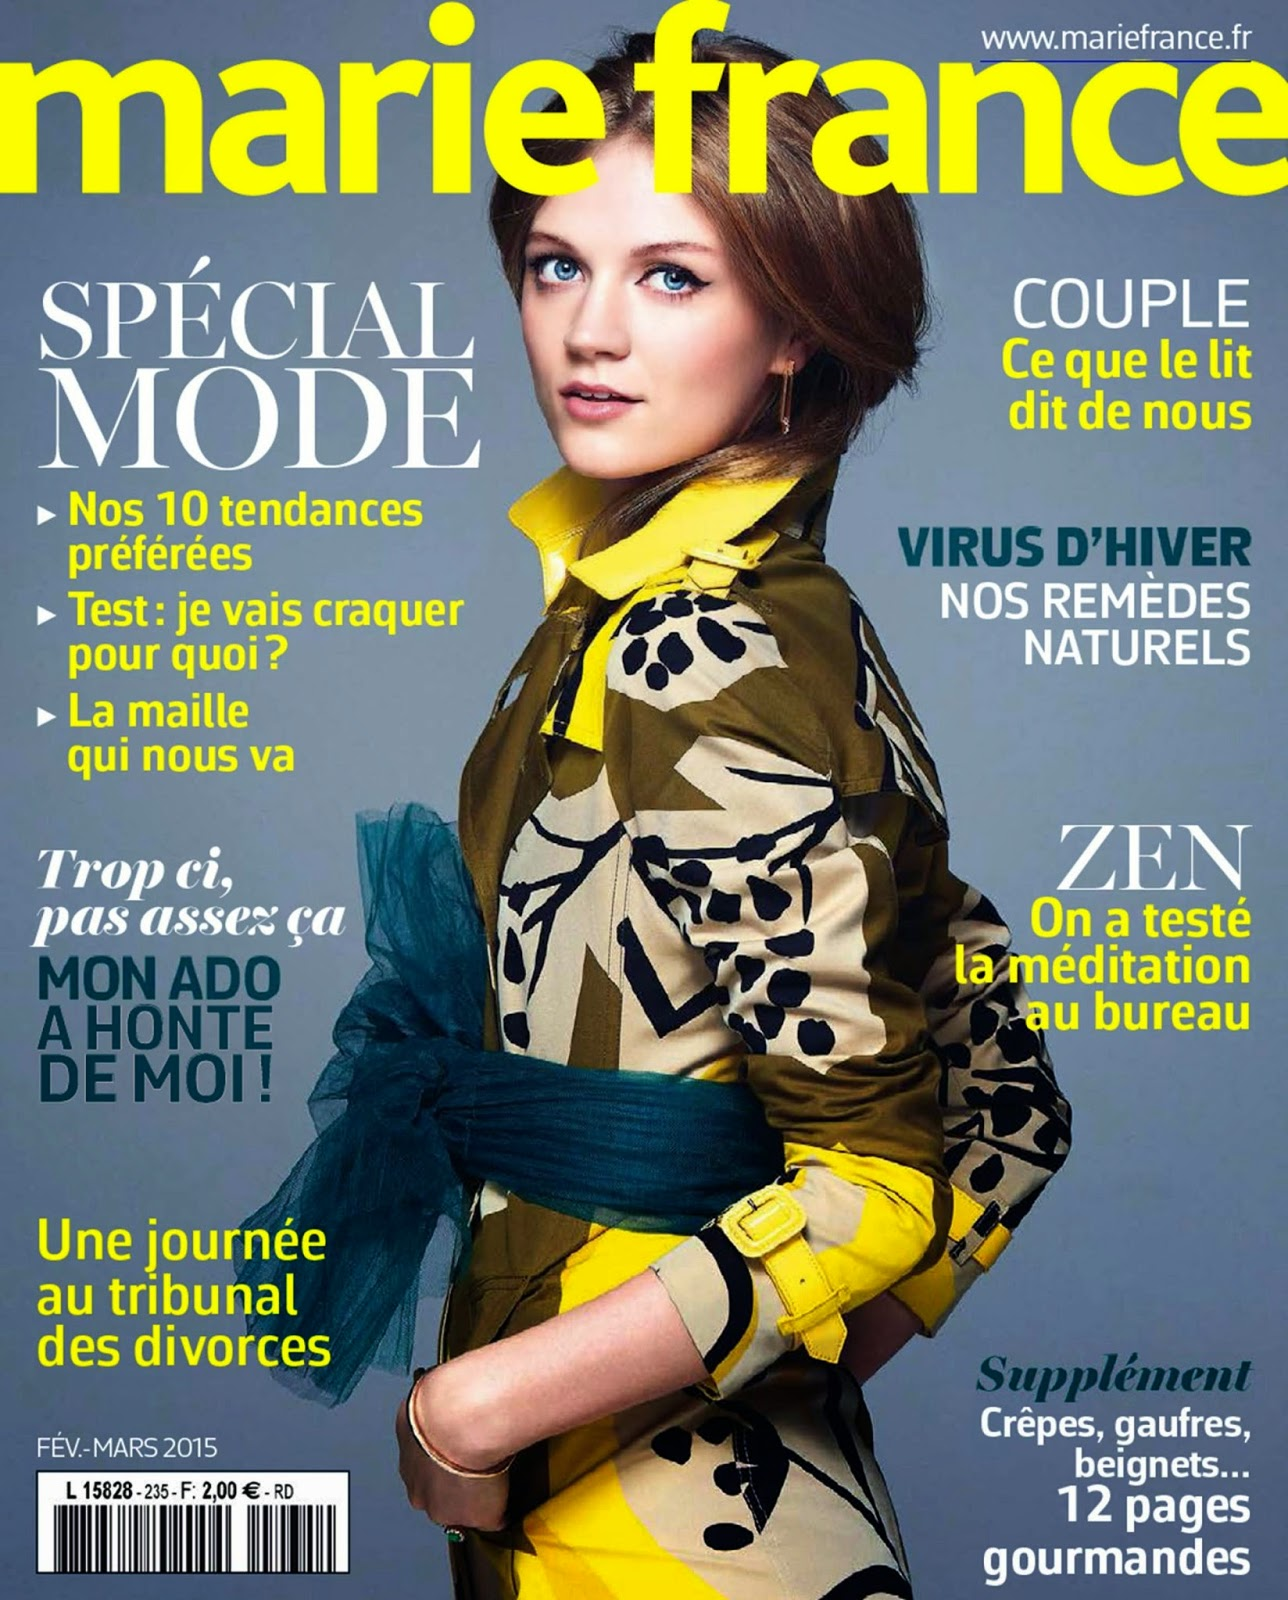 Model: Spécial Mode for Marie France, France